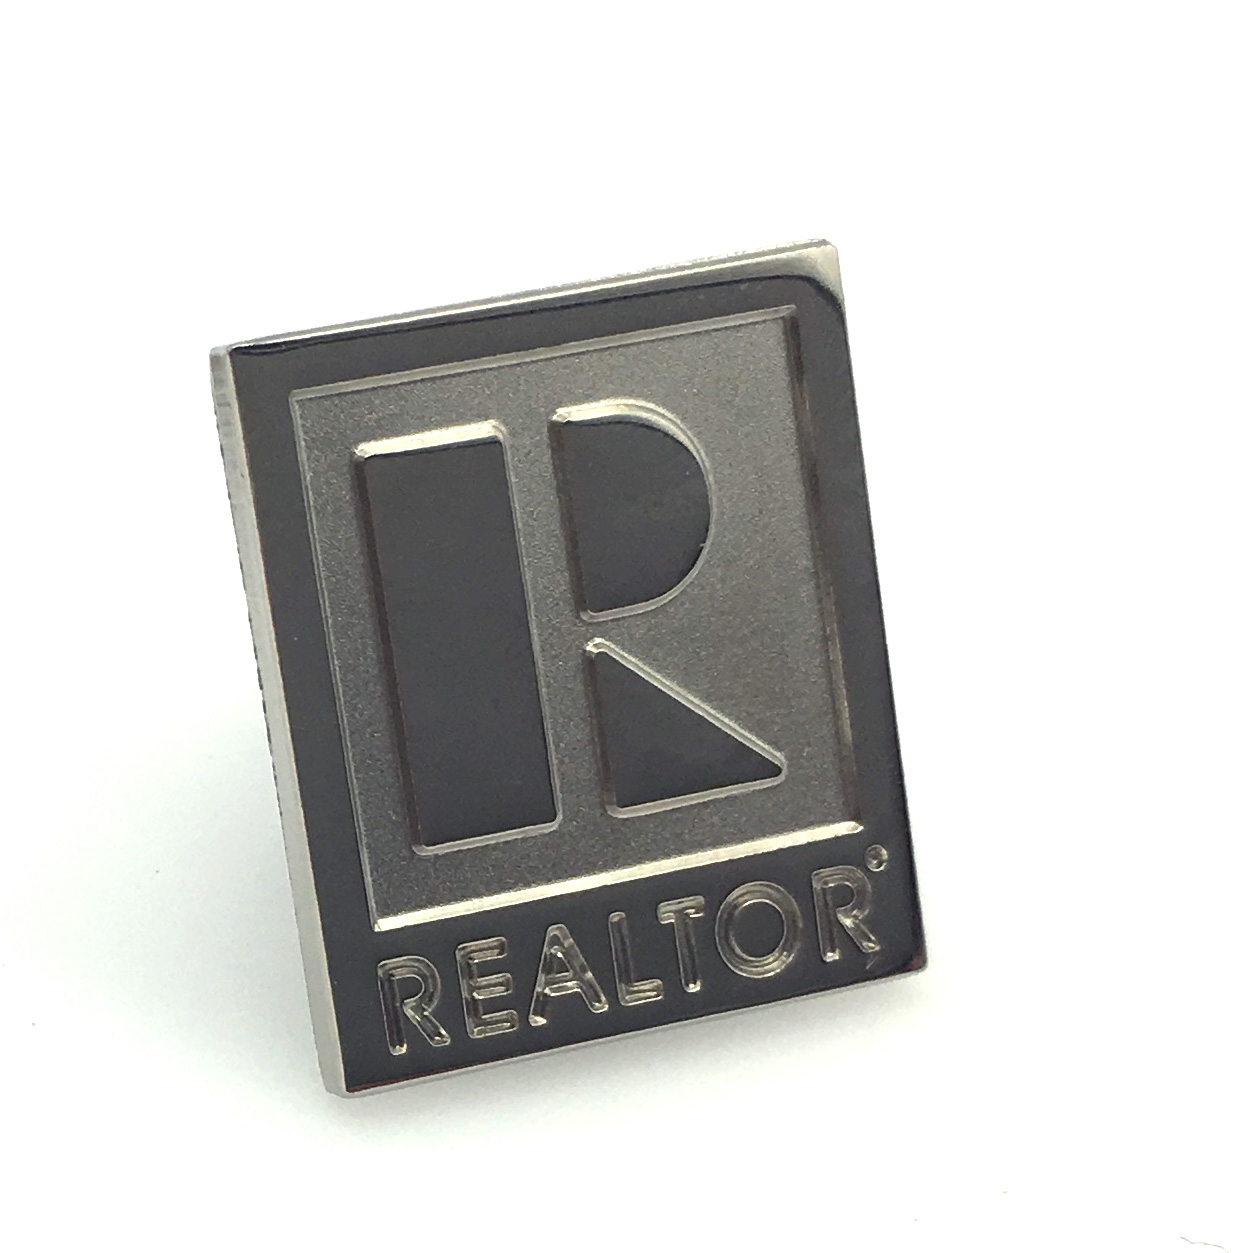 Sterling Silver REALTOR Lapel Pin pins, lapels, stick pins, sticks, real, genuine, diamonds, accents, realtors, special,Sterlings,Silvers